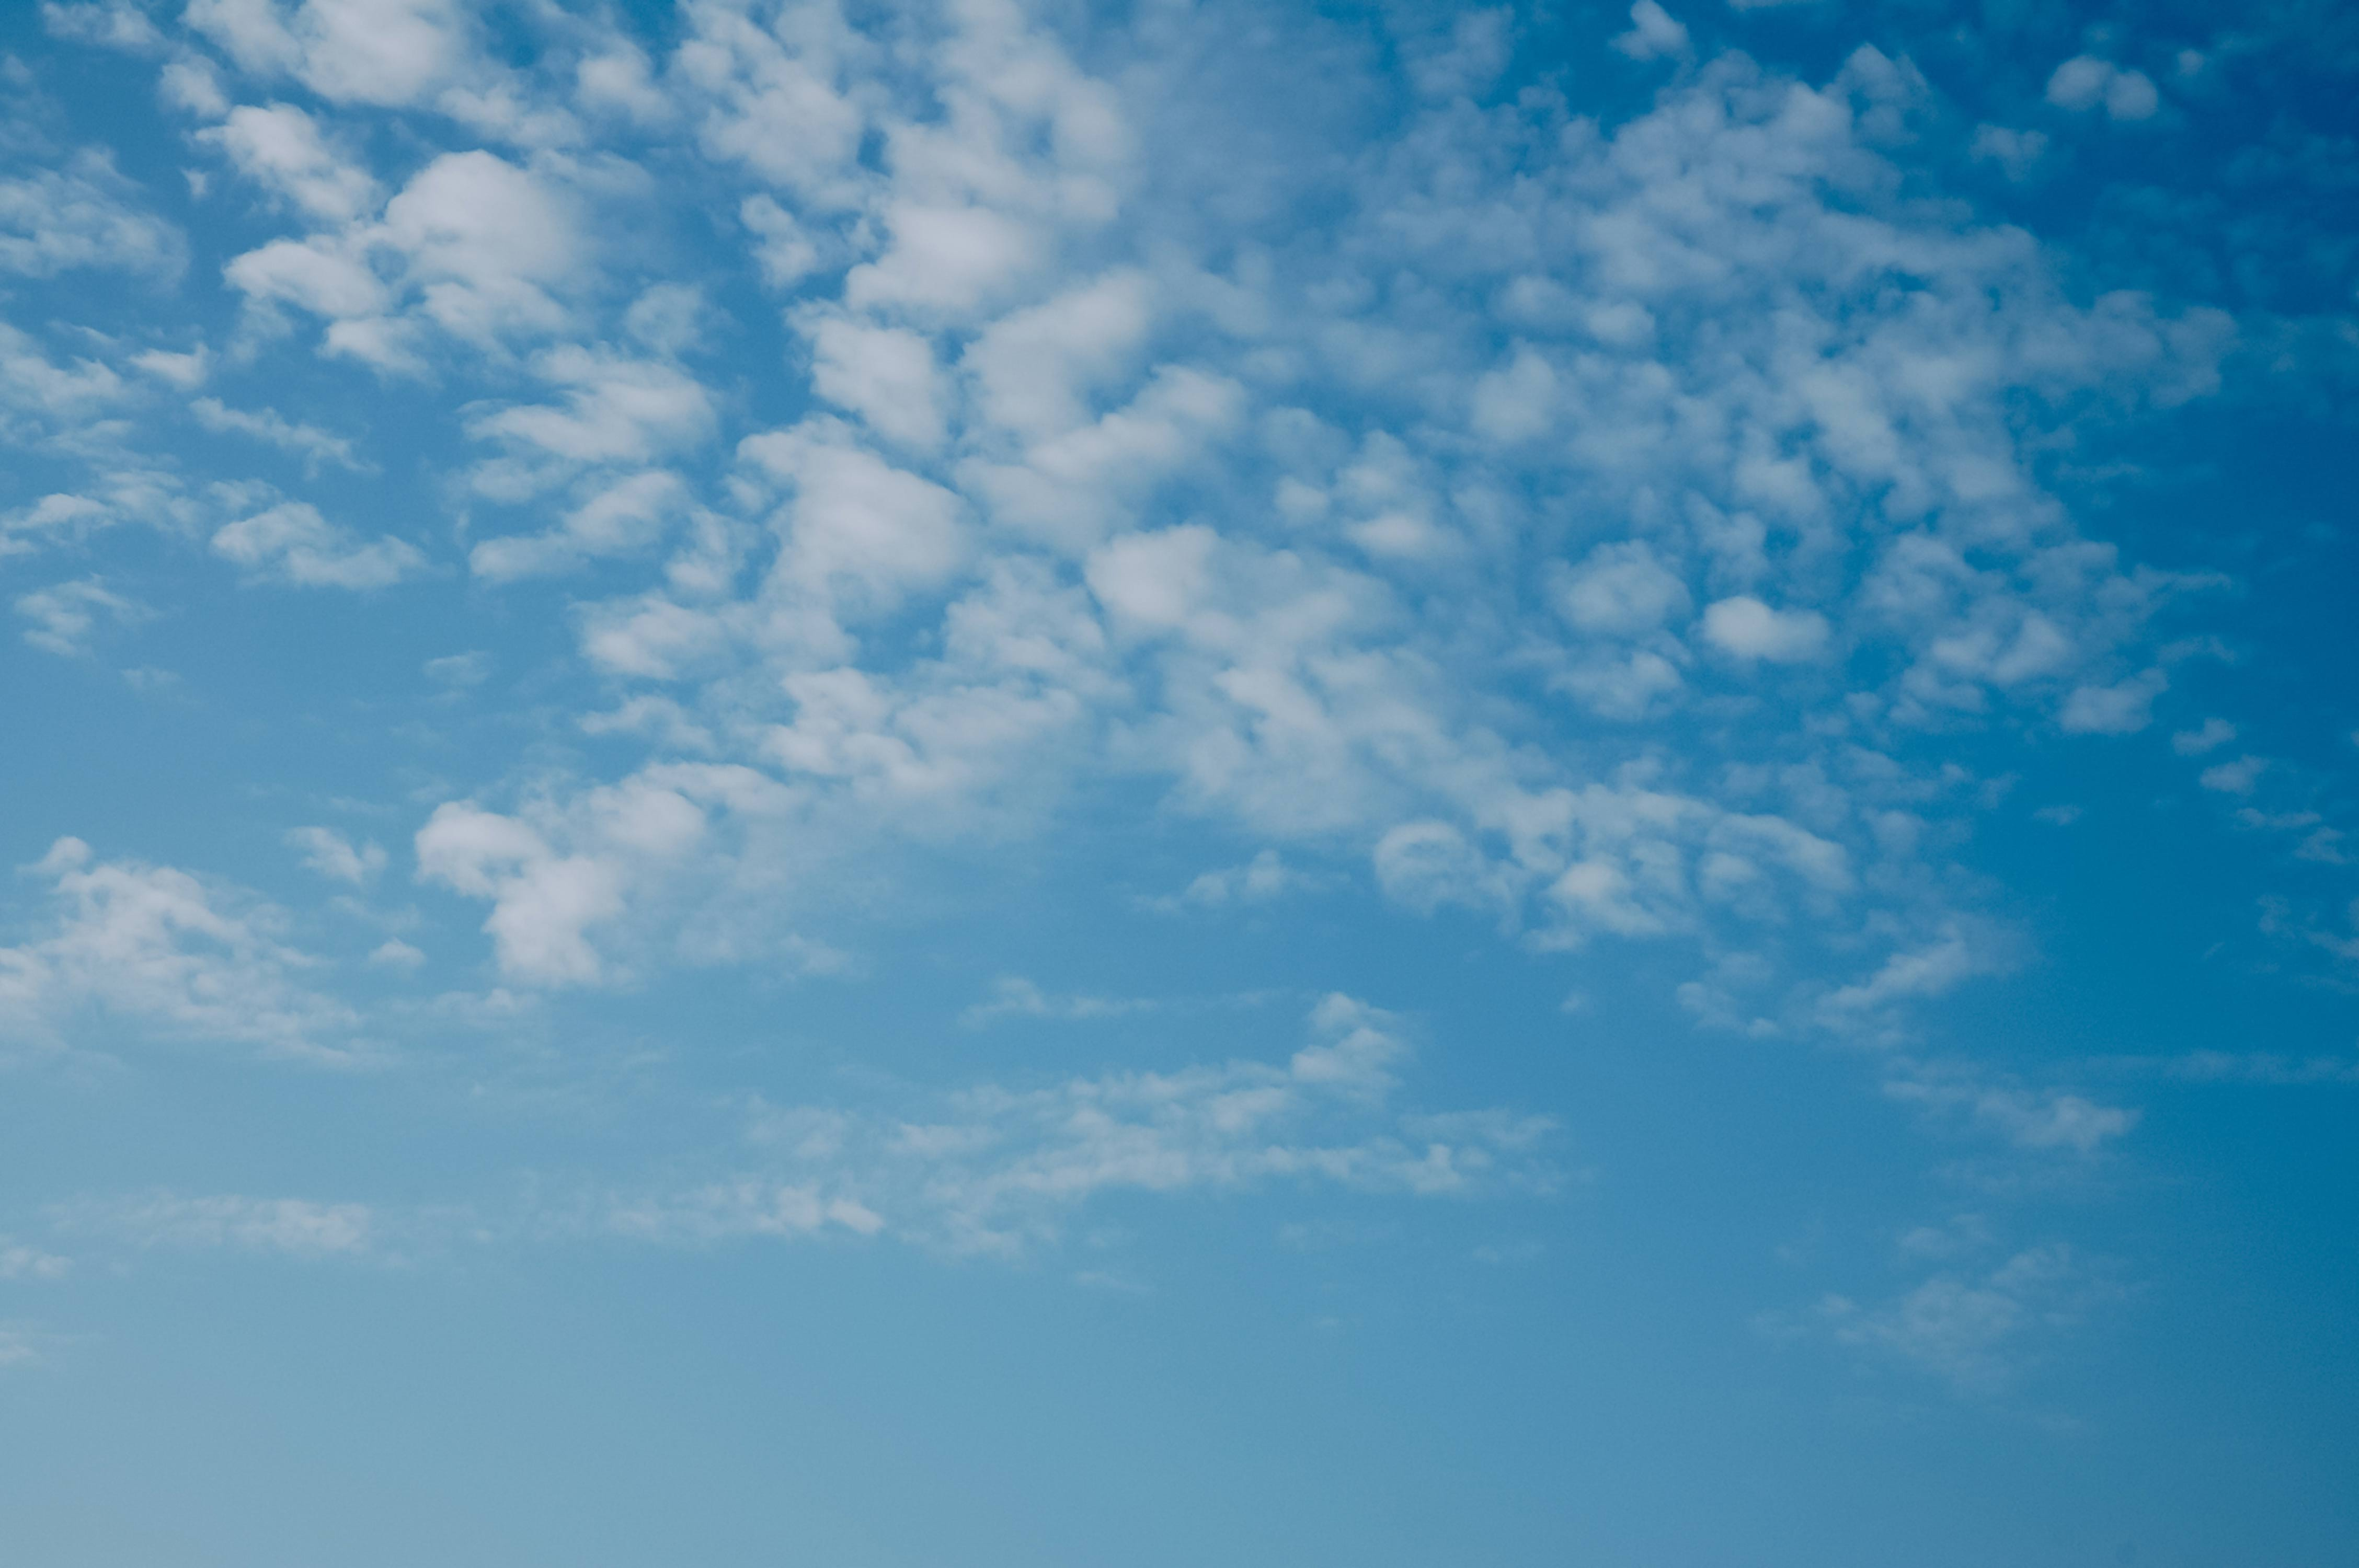 Blue sky with tiny clouds